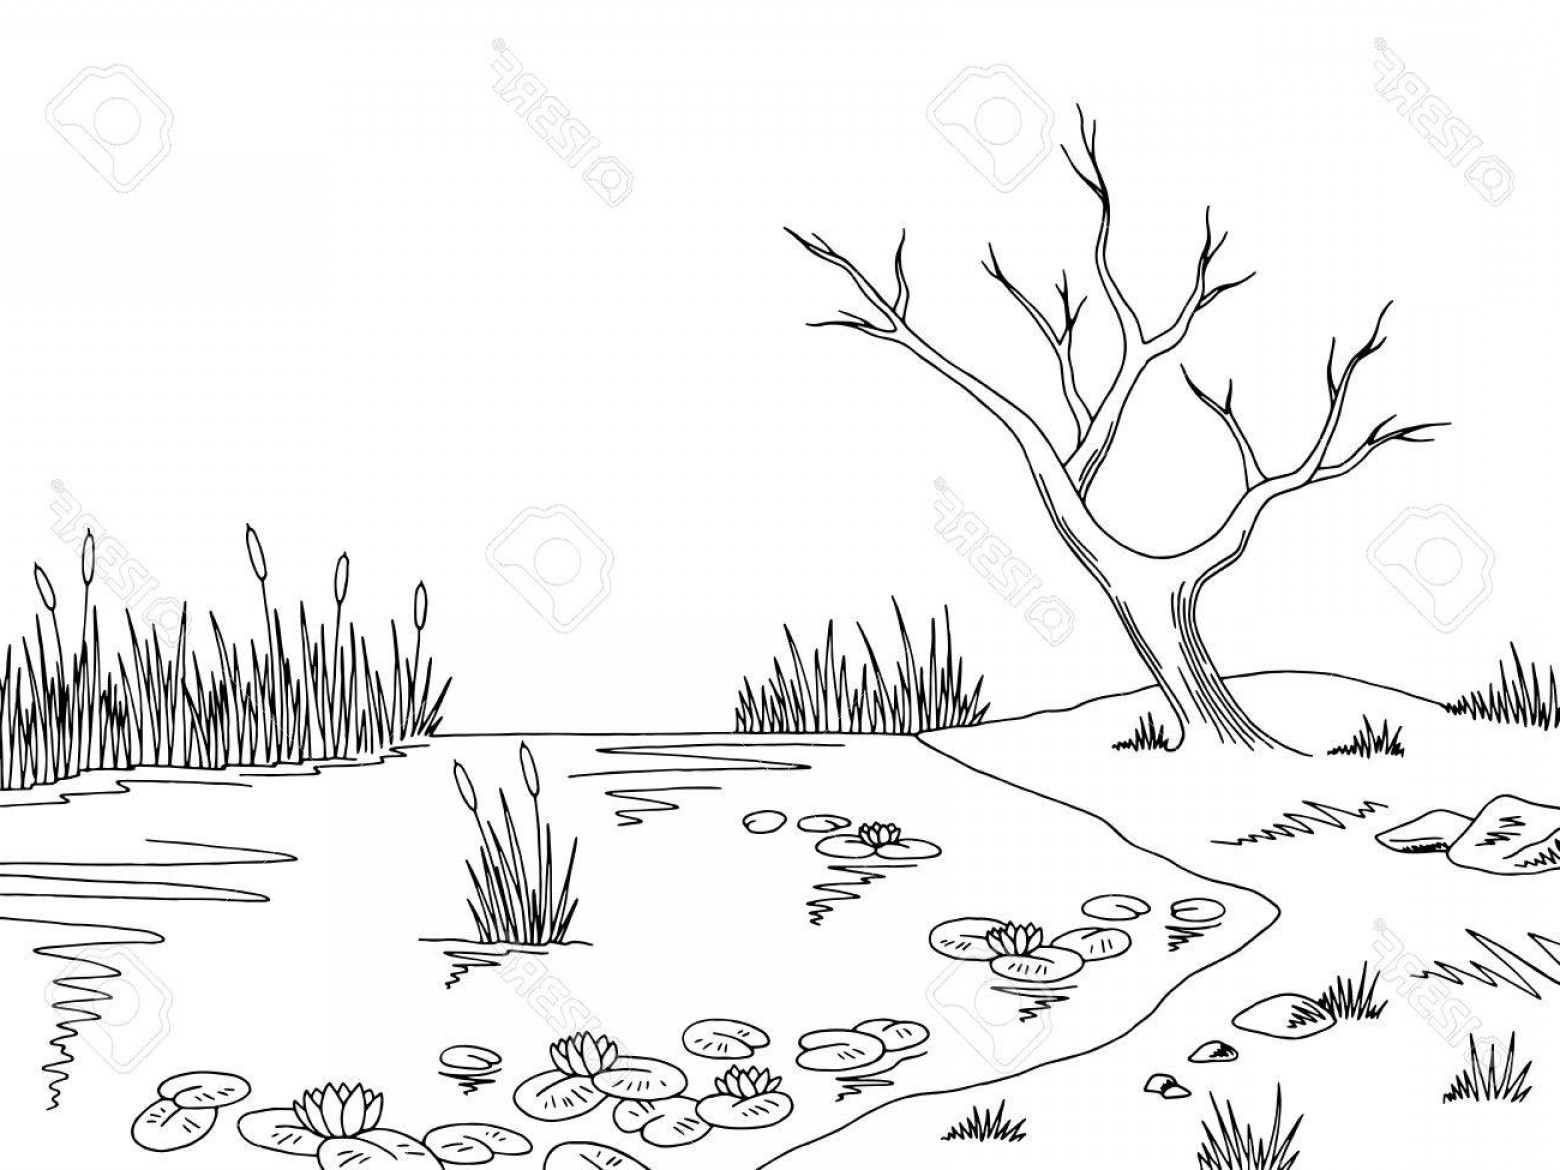 Swamp Vector Art: Photostock Vector Bog Swamp Graphic Black And White Sketch Illustration Vector